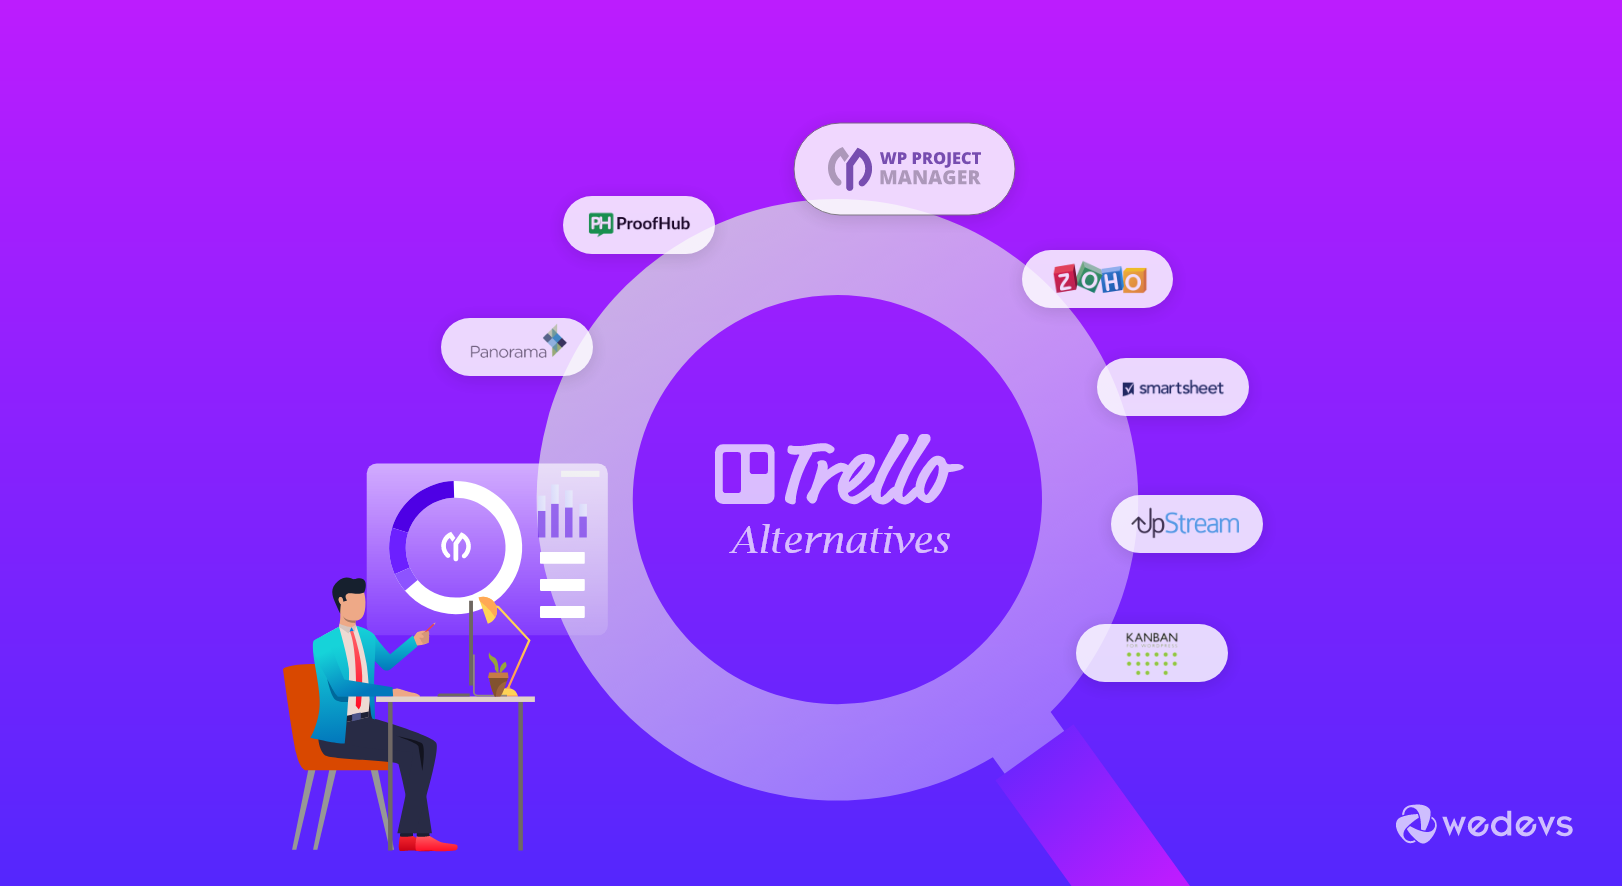 7 Best Trello Alternatives 2020 (Top WordPress Project Management Software Compared)